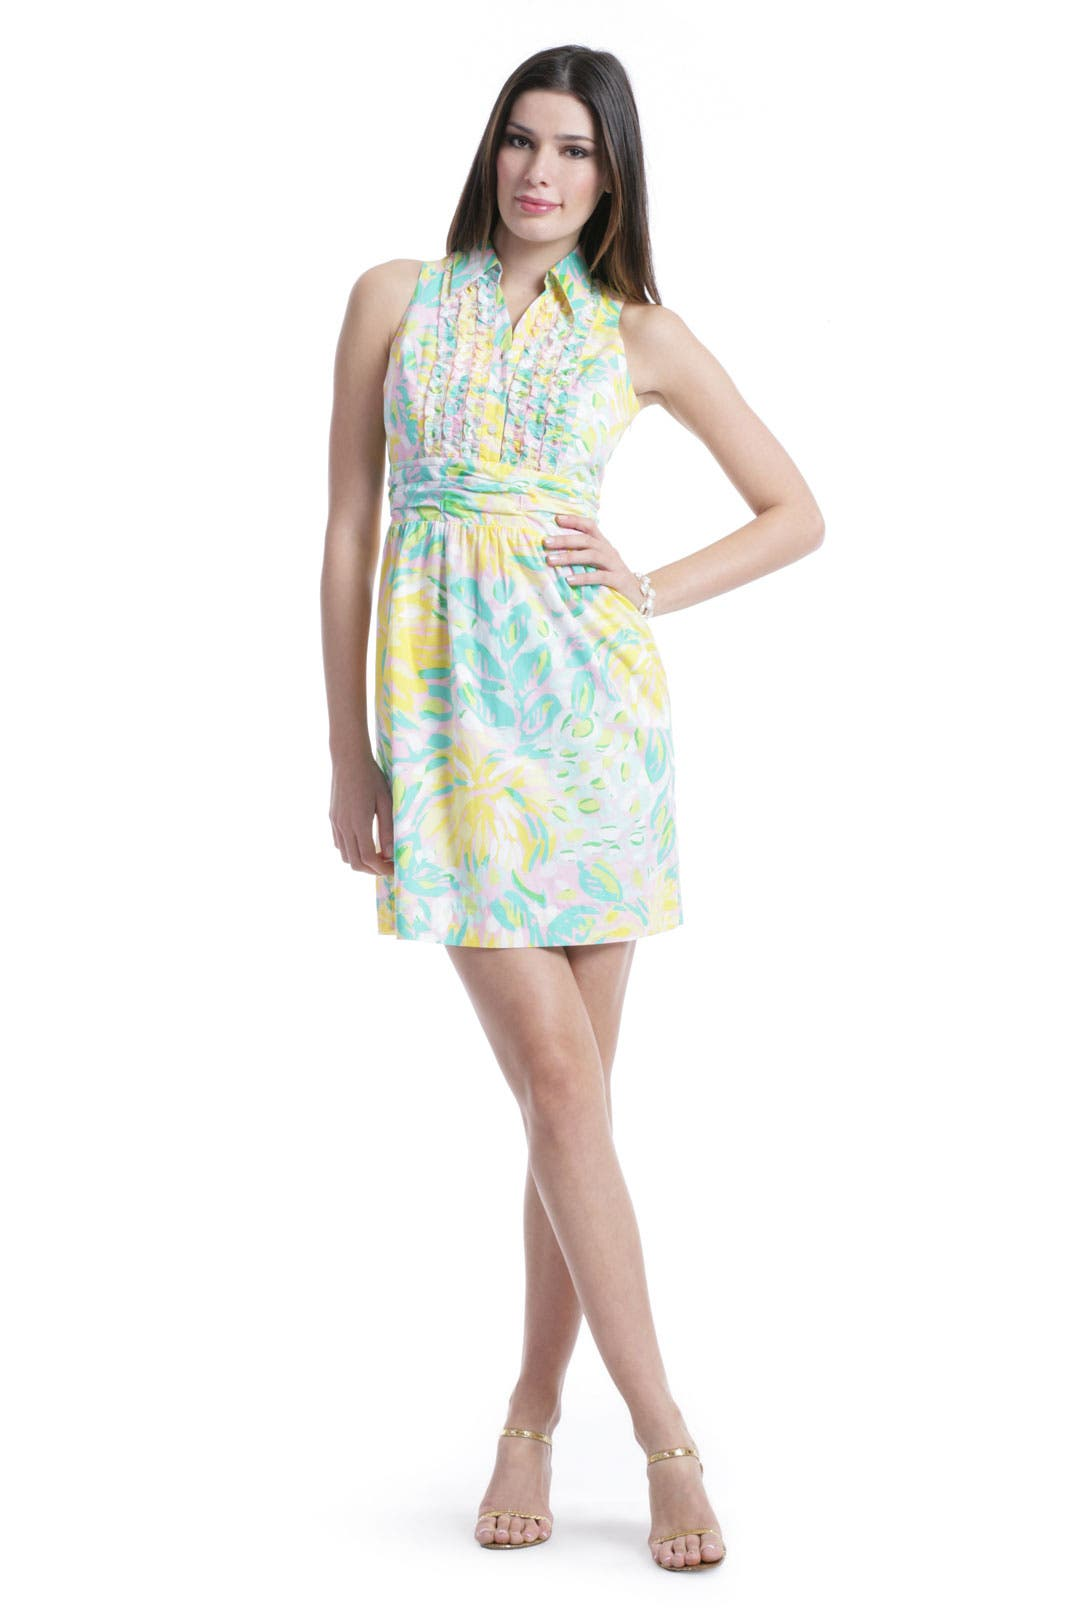 Wisteria Lane Dress by Lilly Pulitzer